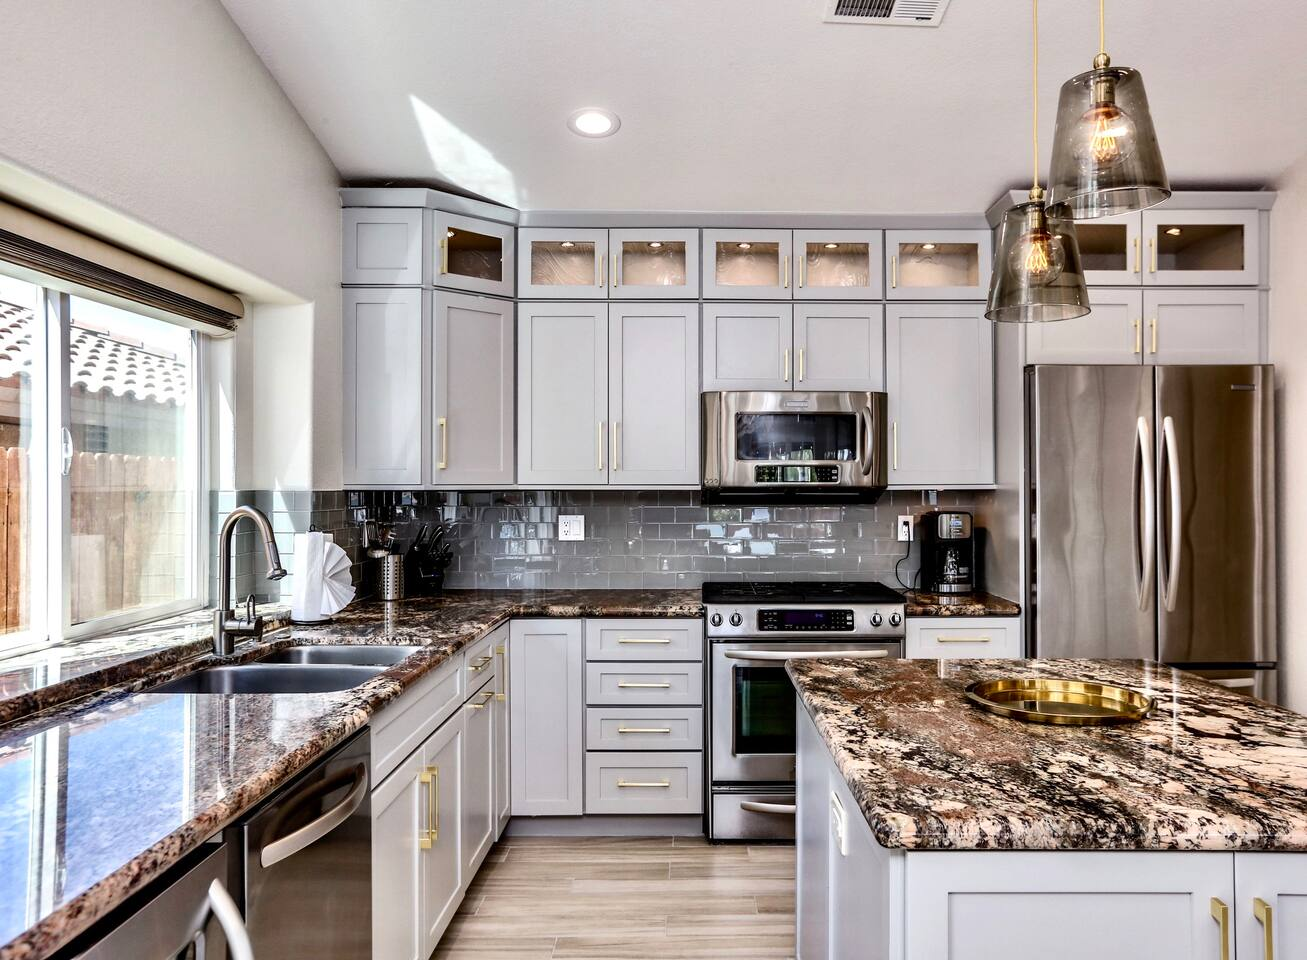 Channel your inner chef in the sparkling kitchen, detailed with stainless steel appliances and granite countertops